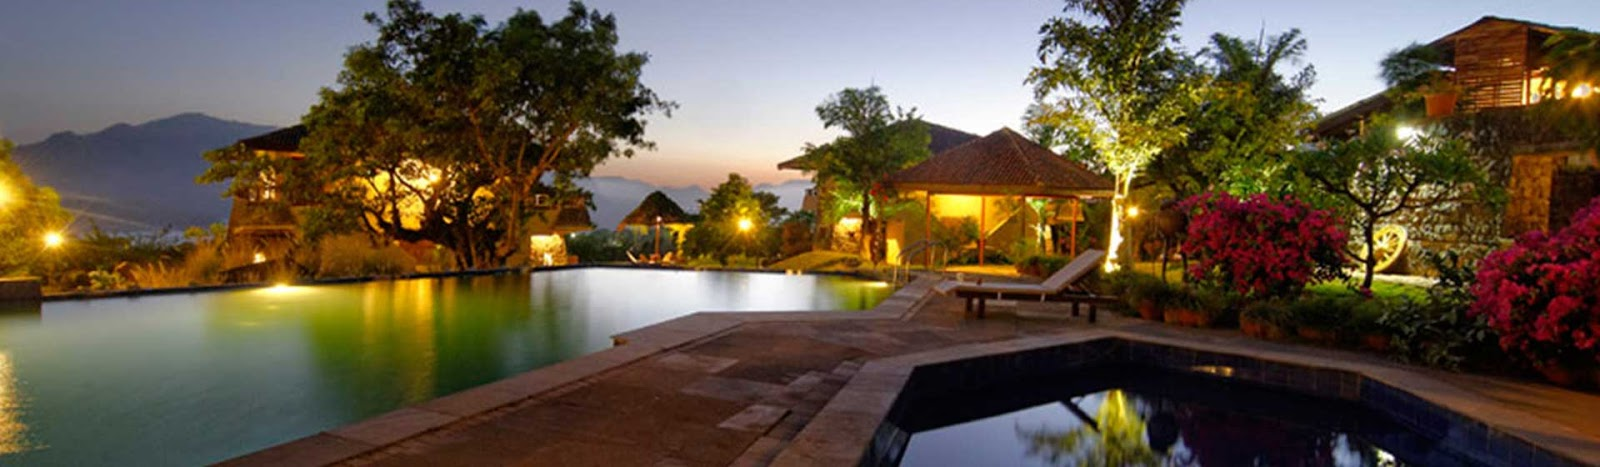 10 Best Hotels in Pune - Most Popular Pune Hotels